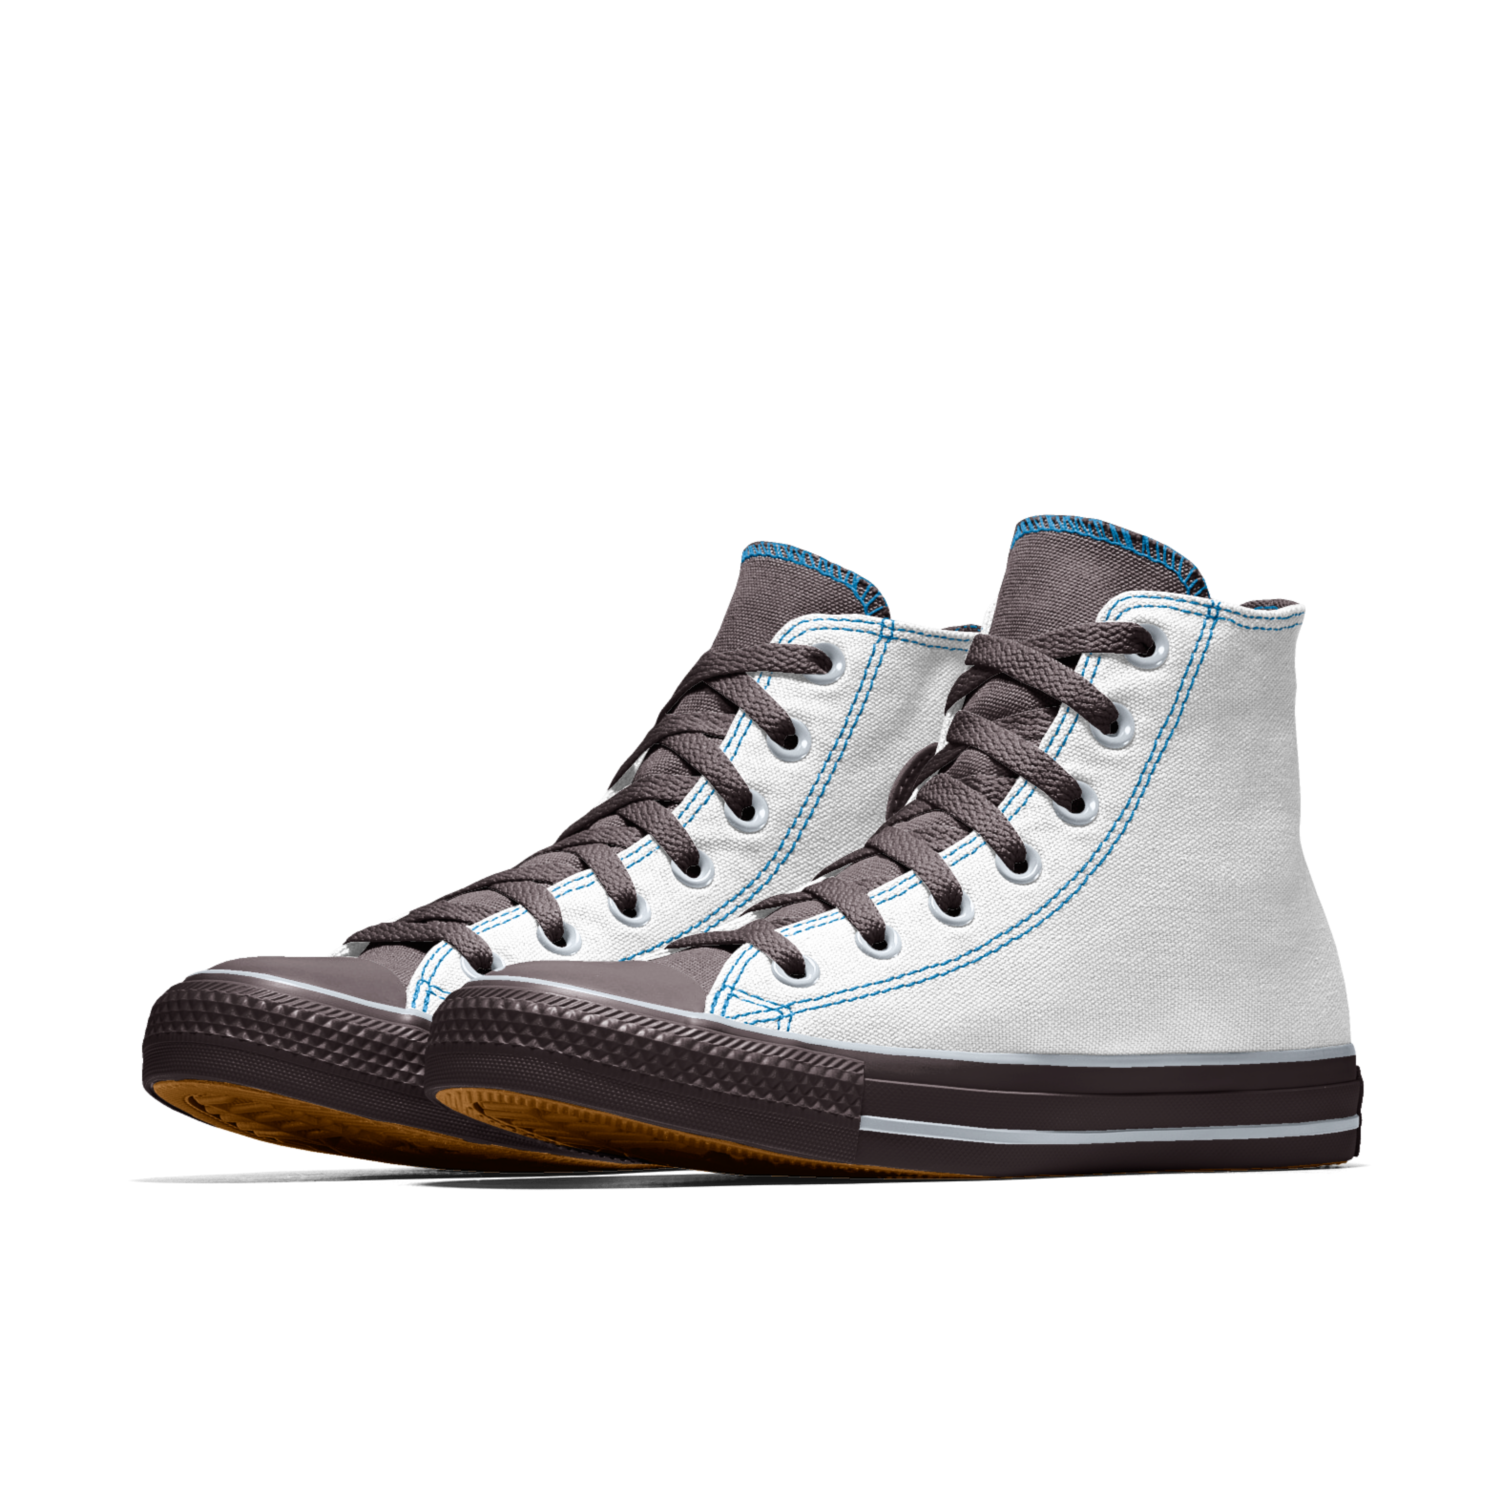 400c07b28e7d The Converse Custom Chuck Taylor All Star High Top Shoe in 2019 ...